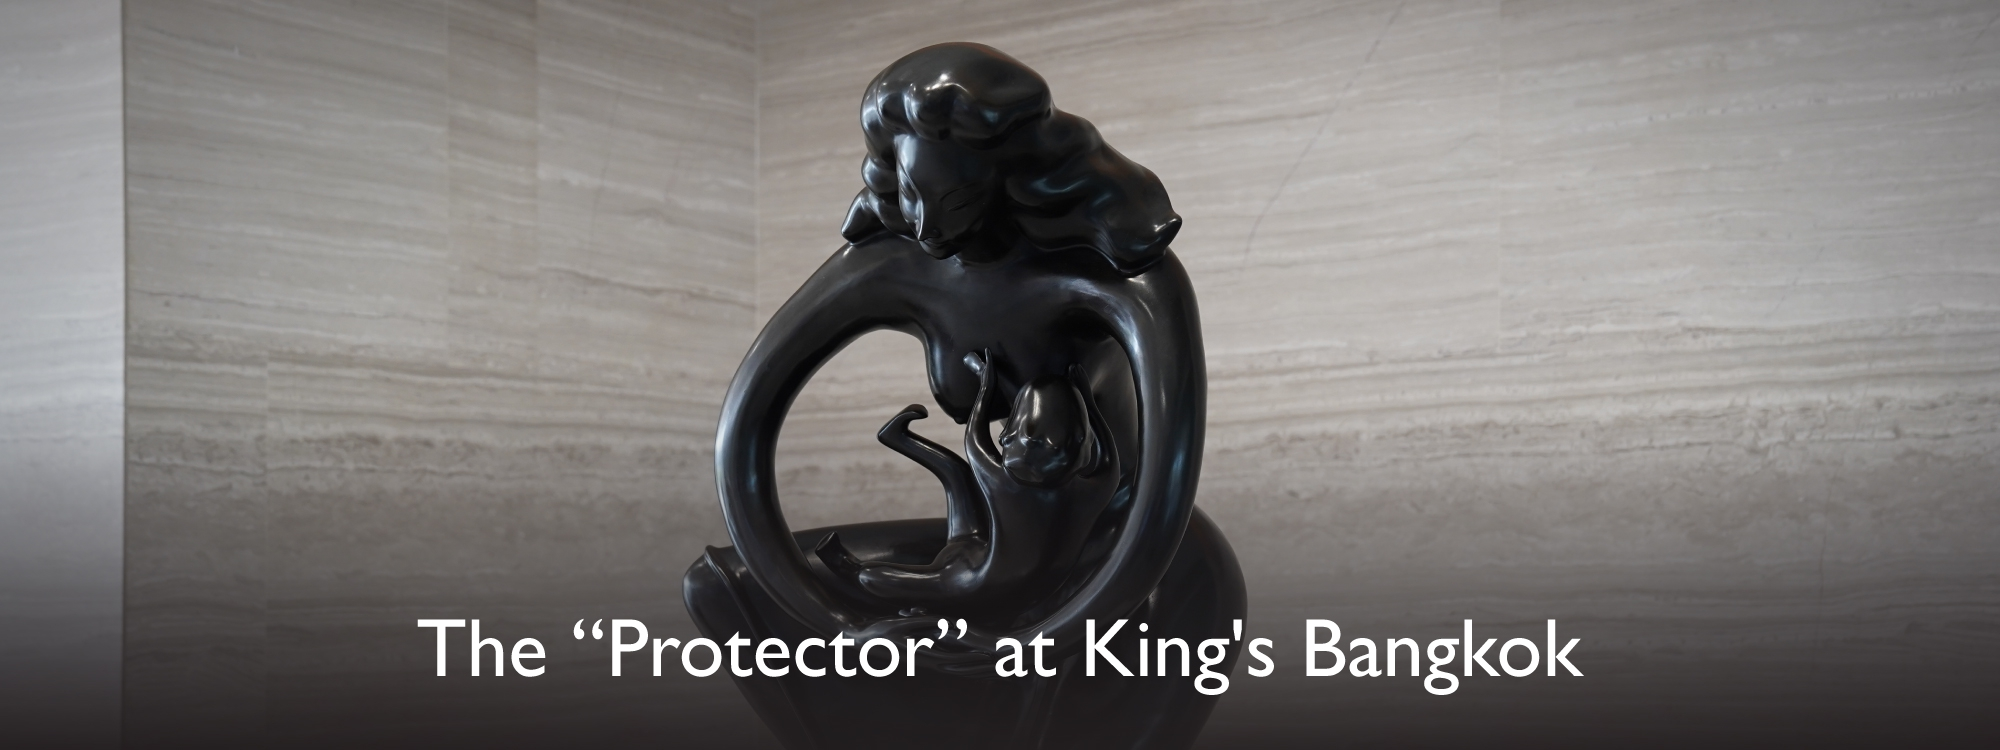 "The ""Protector"" at King's Bangkok"